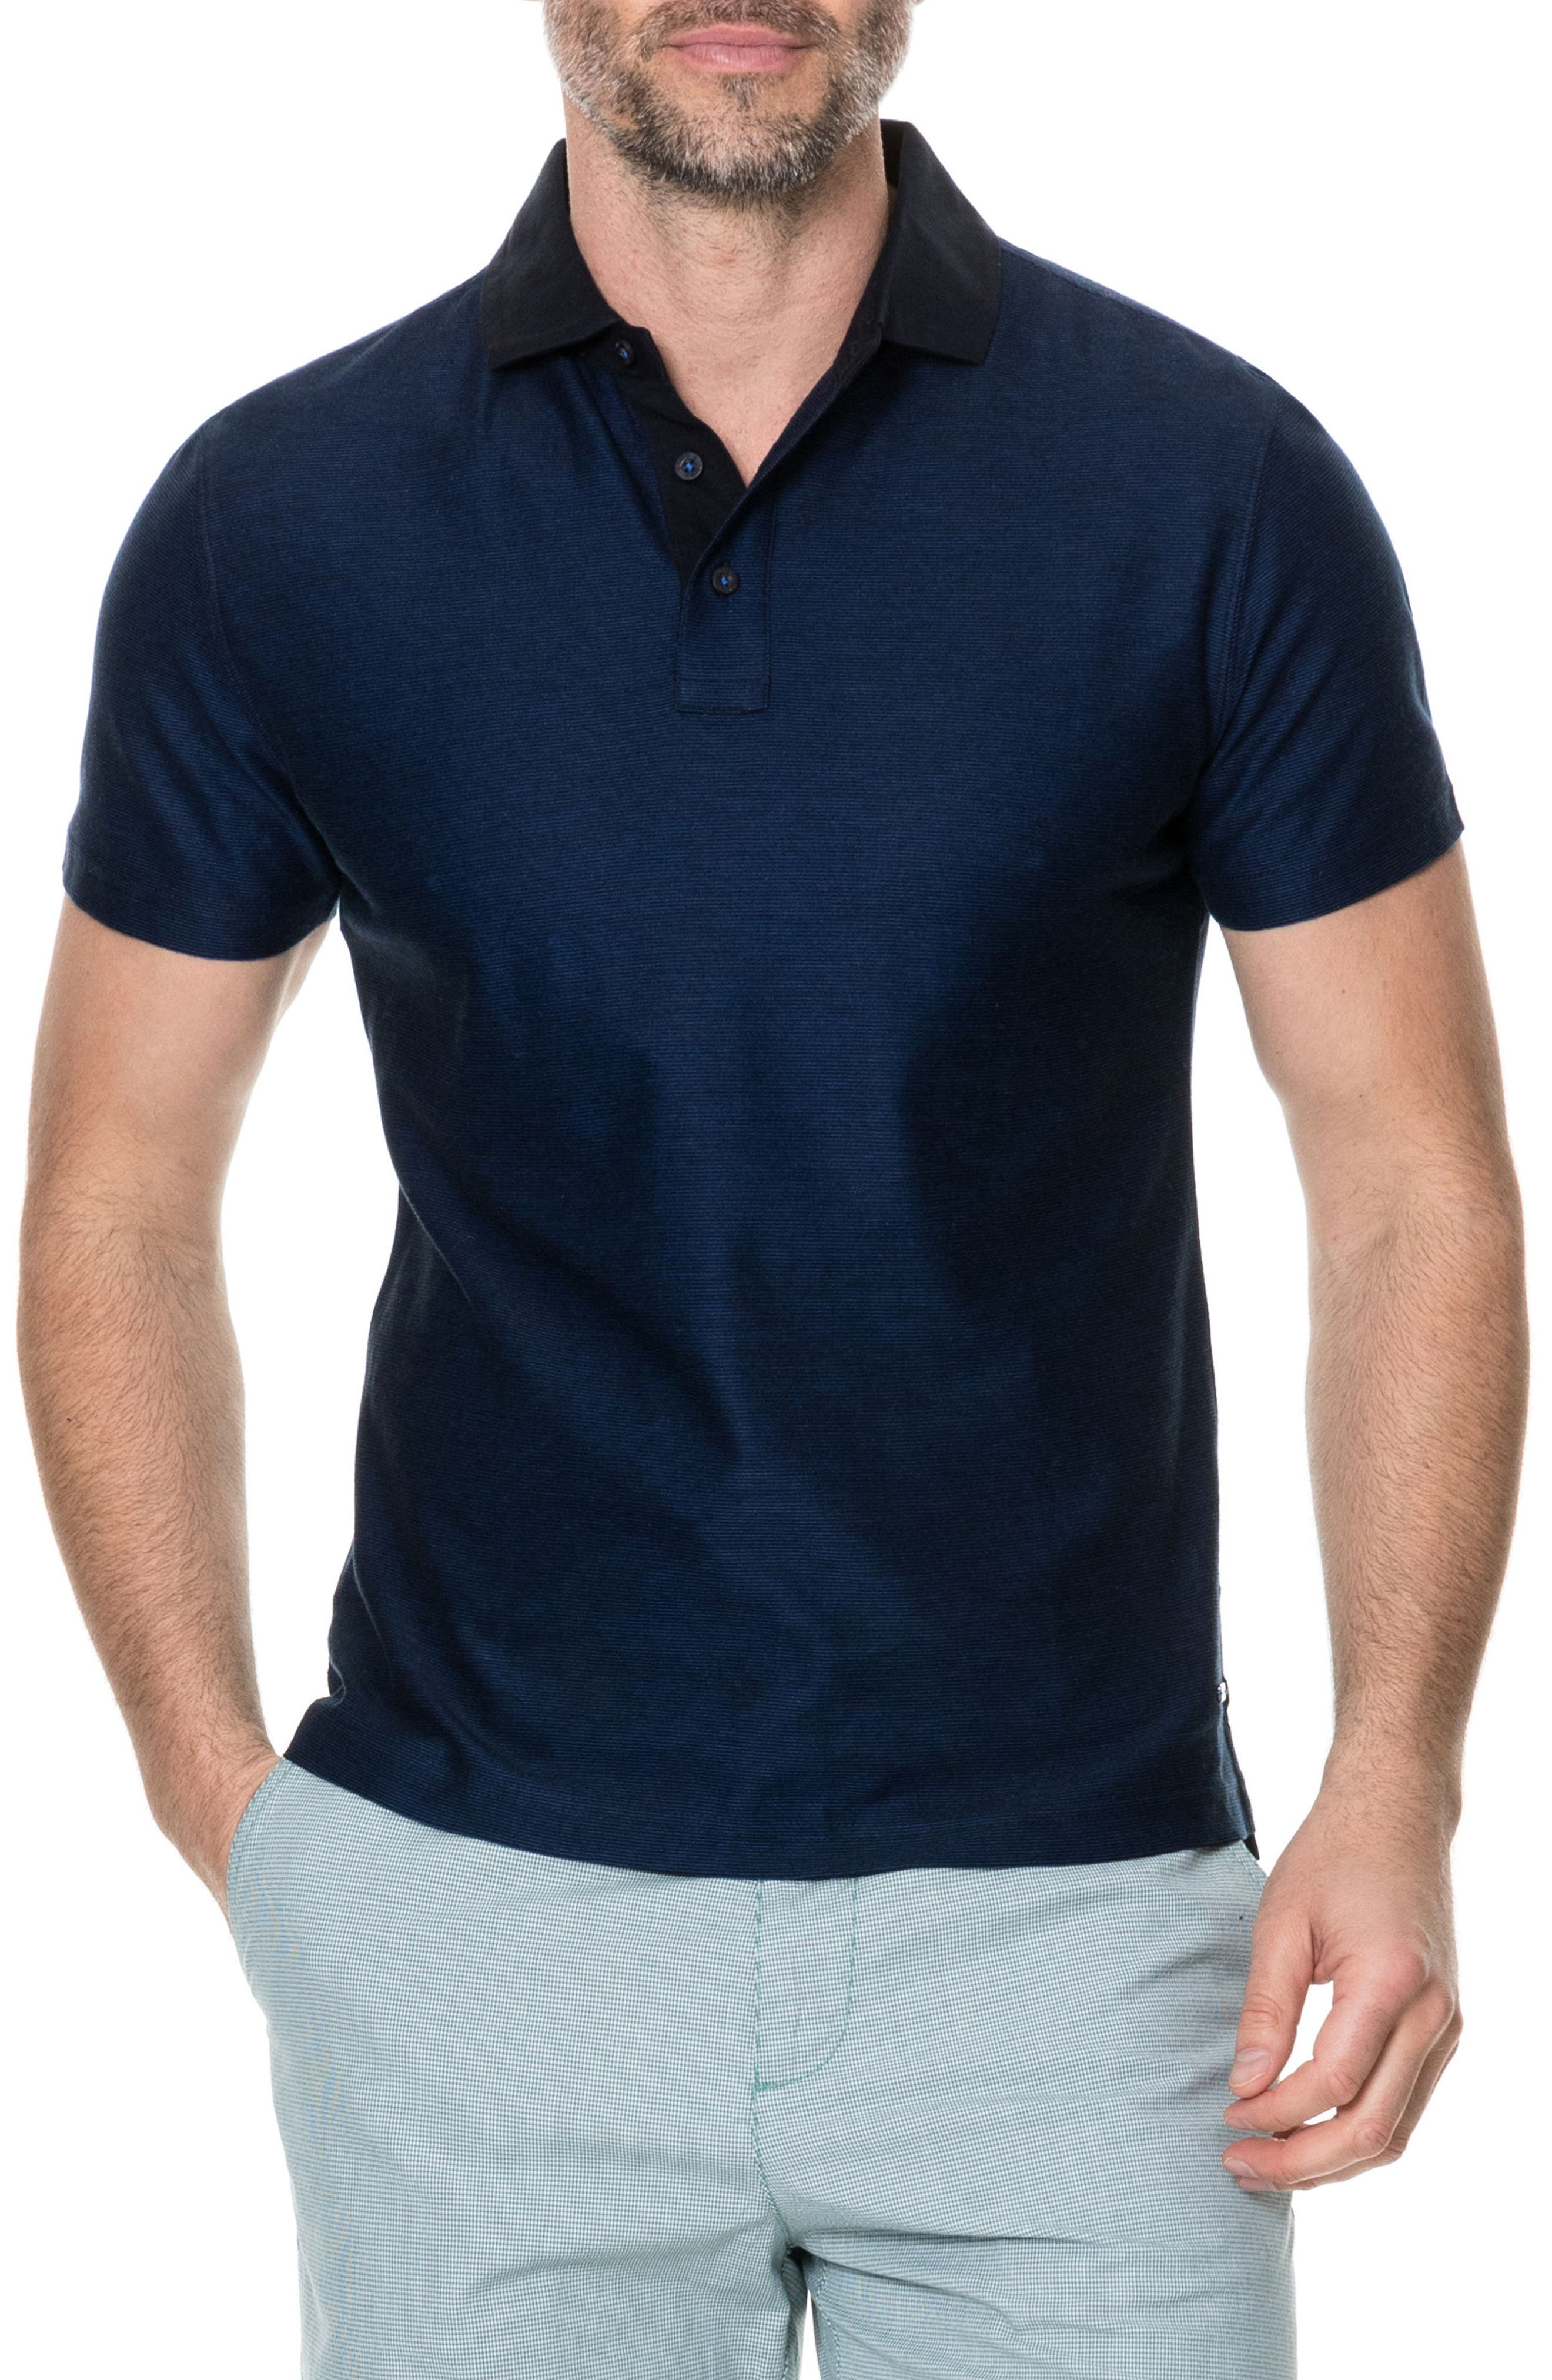 Caplestone Regular Fit Polo,                             Main thumbnail 1, color,                             Ink